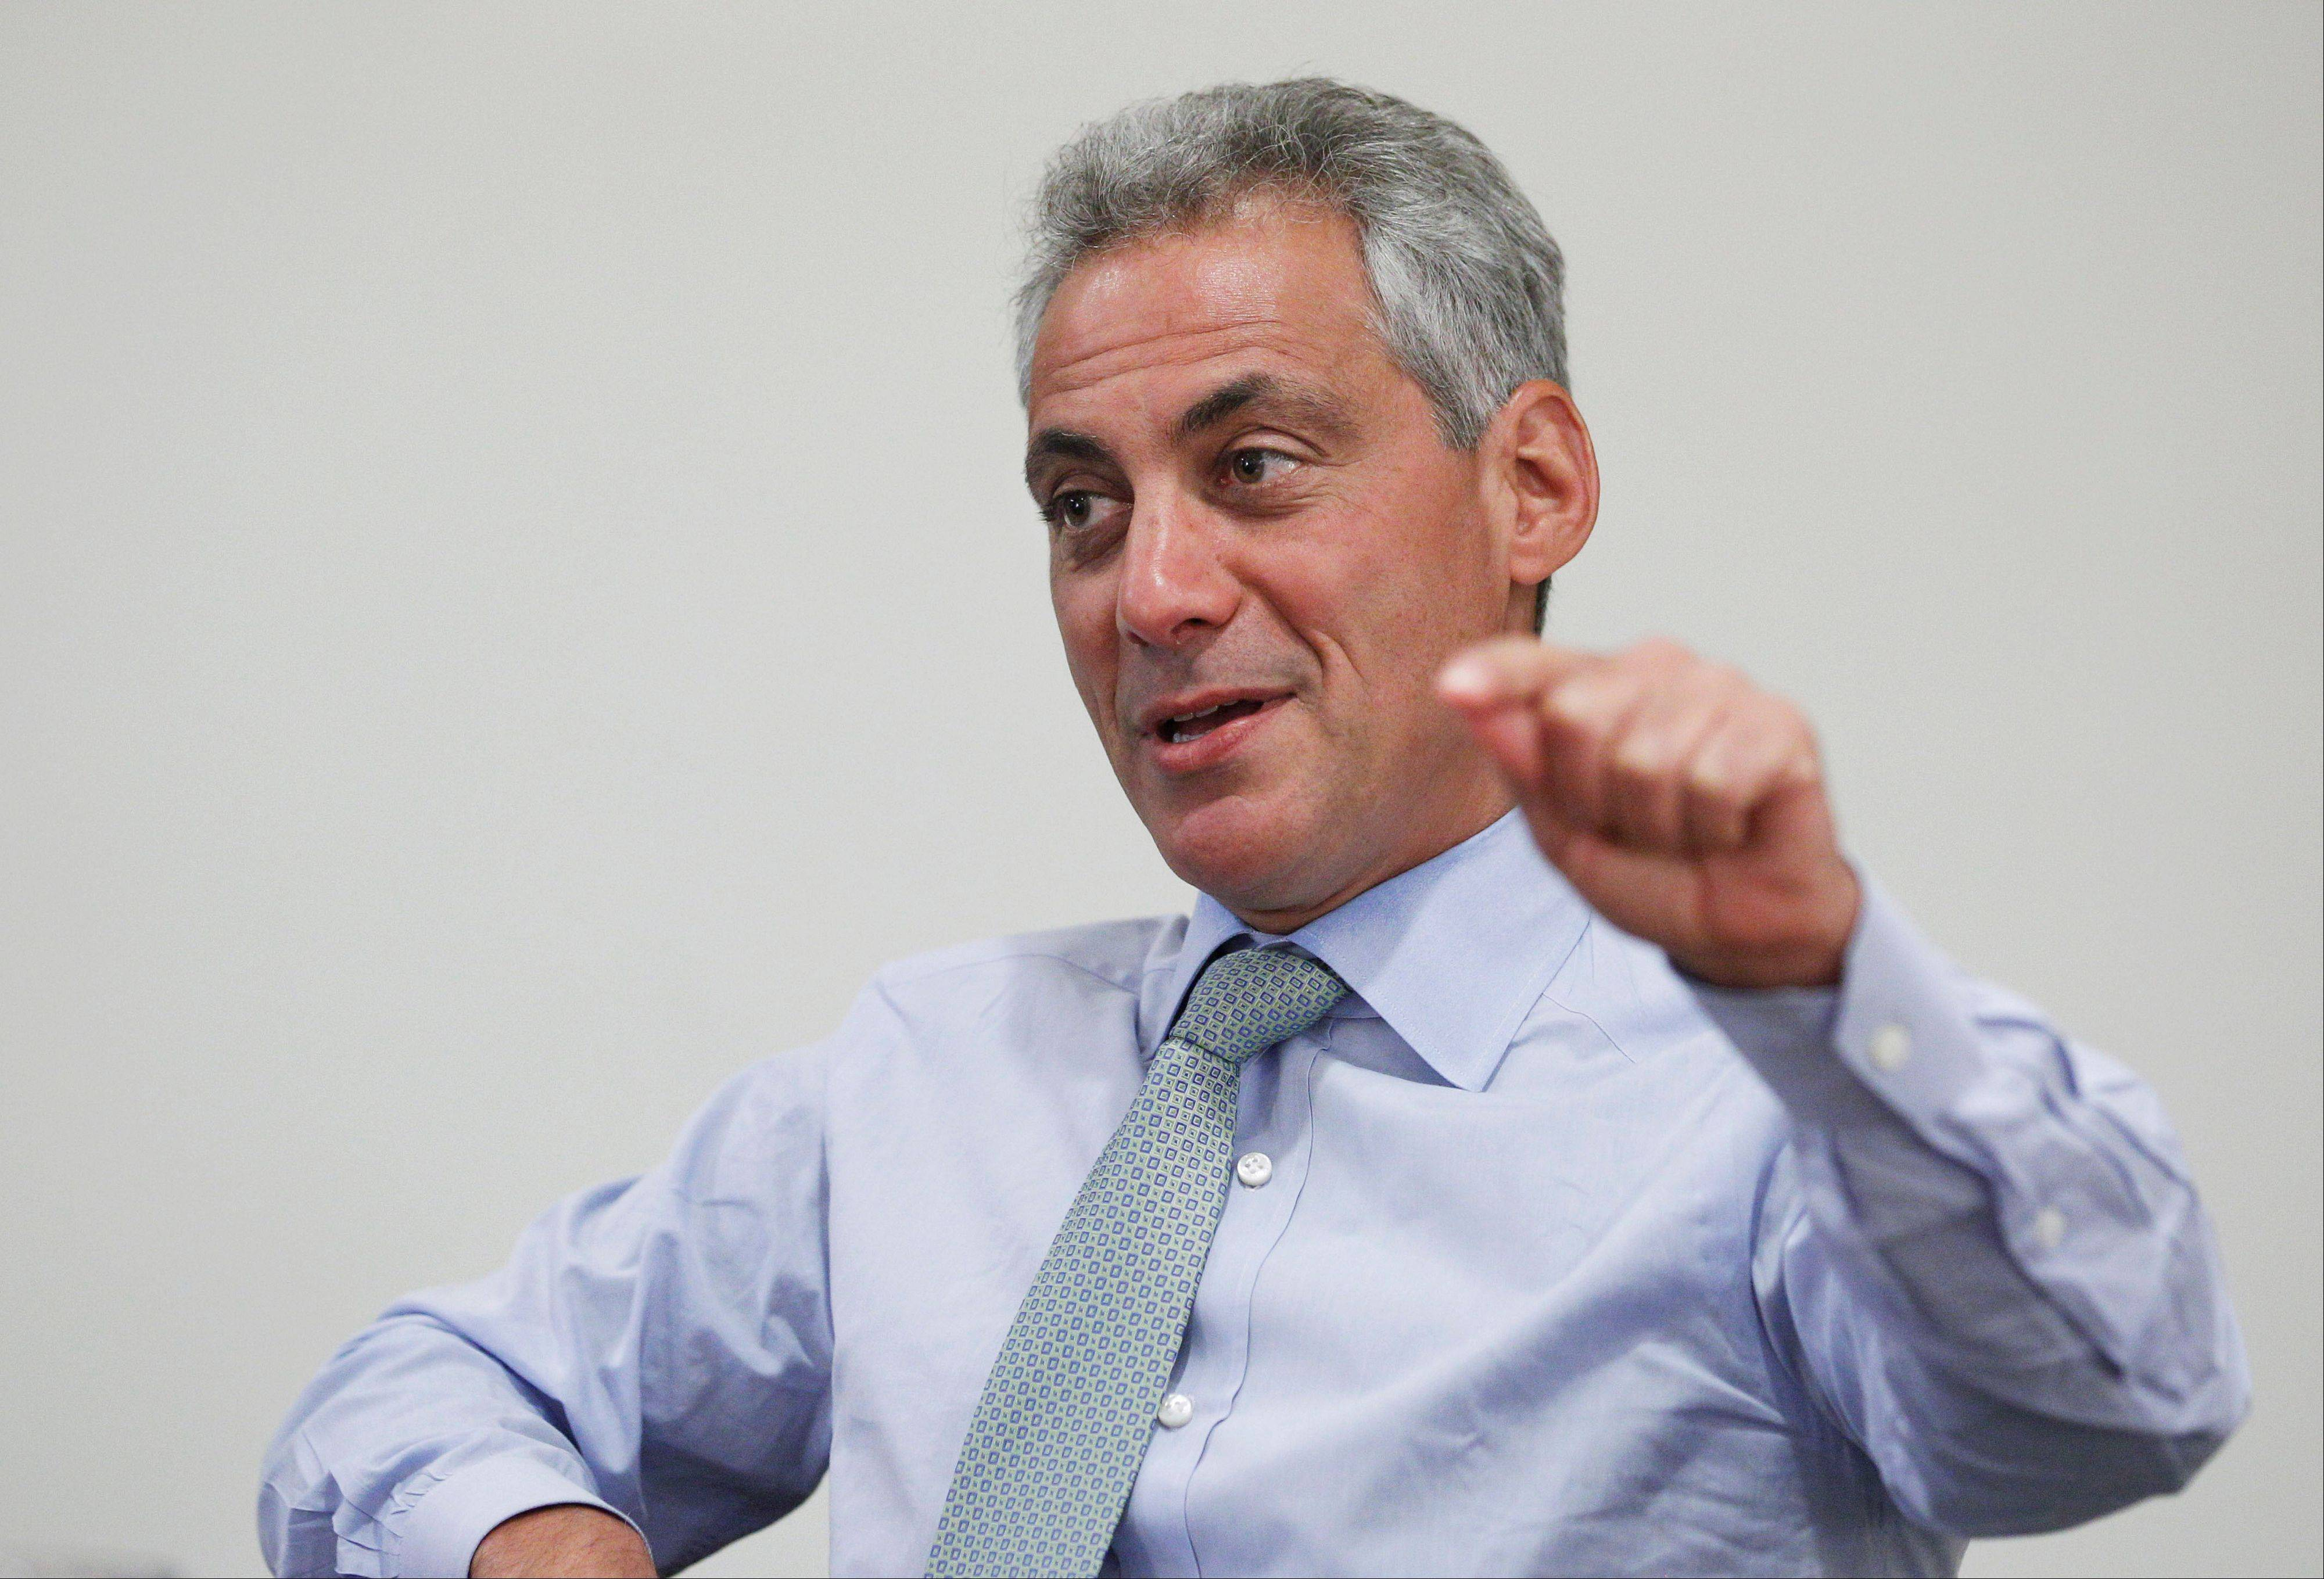 Chicago Mayor Rahm Emanuel lists the redeployment of 500 police officers to the street from other areas of the department as one his accomplishments during his first 100 days in office.